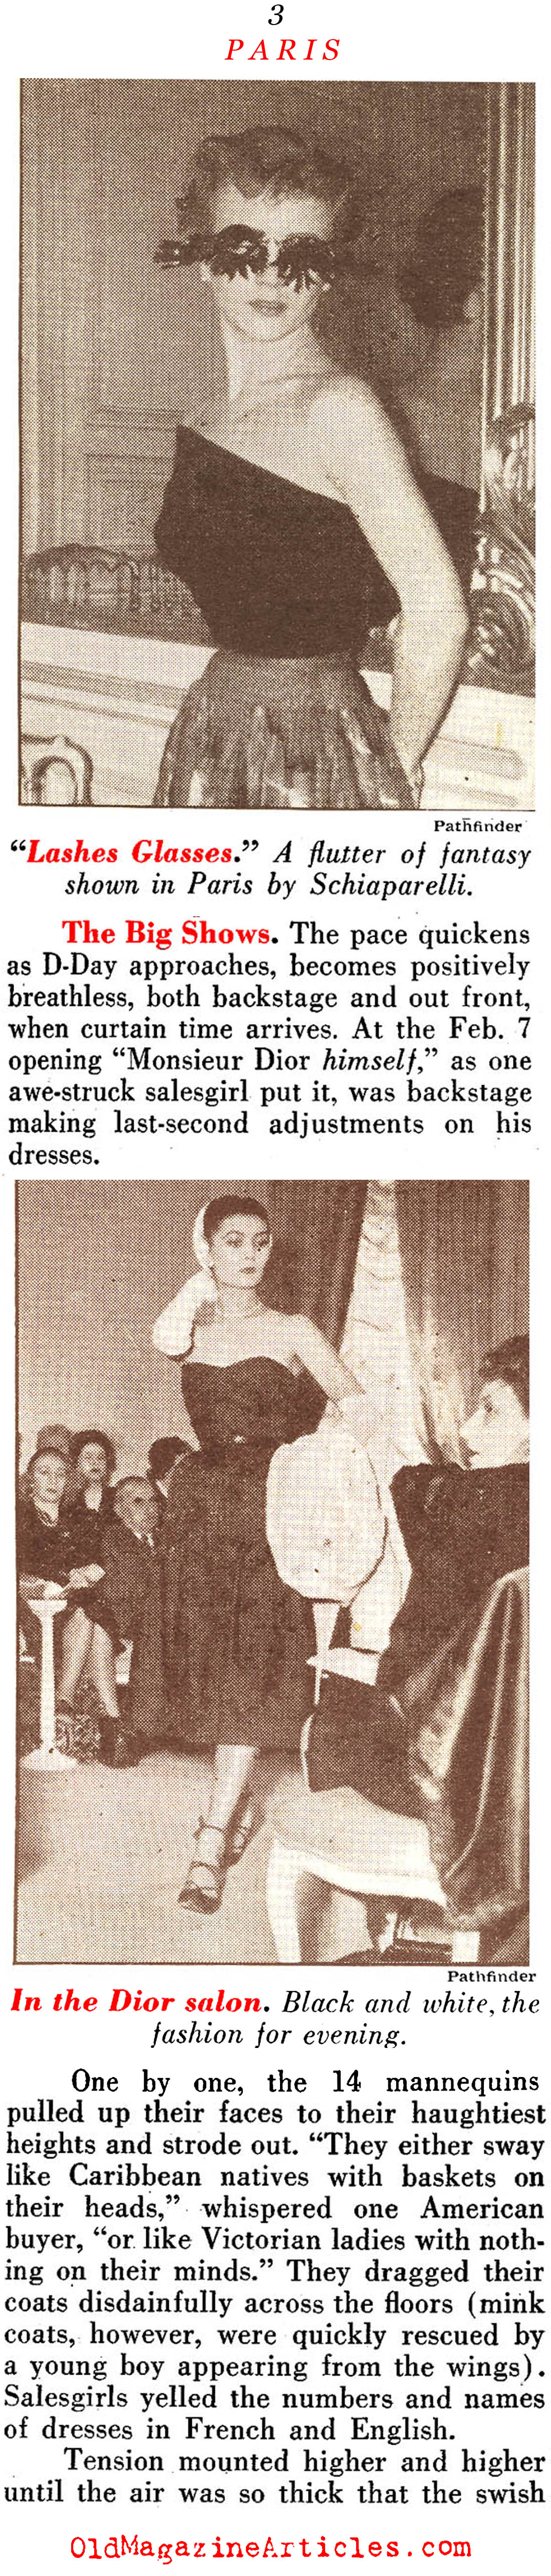 Setting the Trends from Paris (Pathfinder Magazine, 1951)